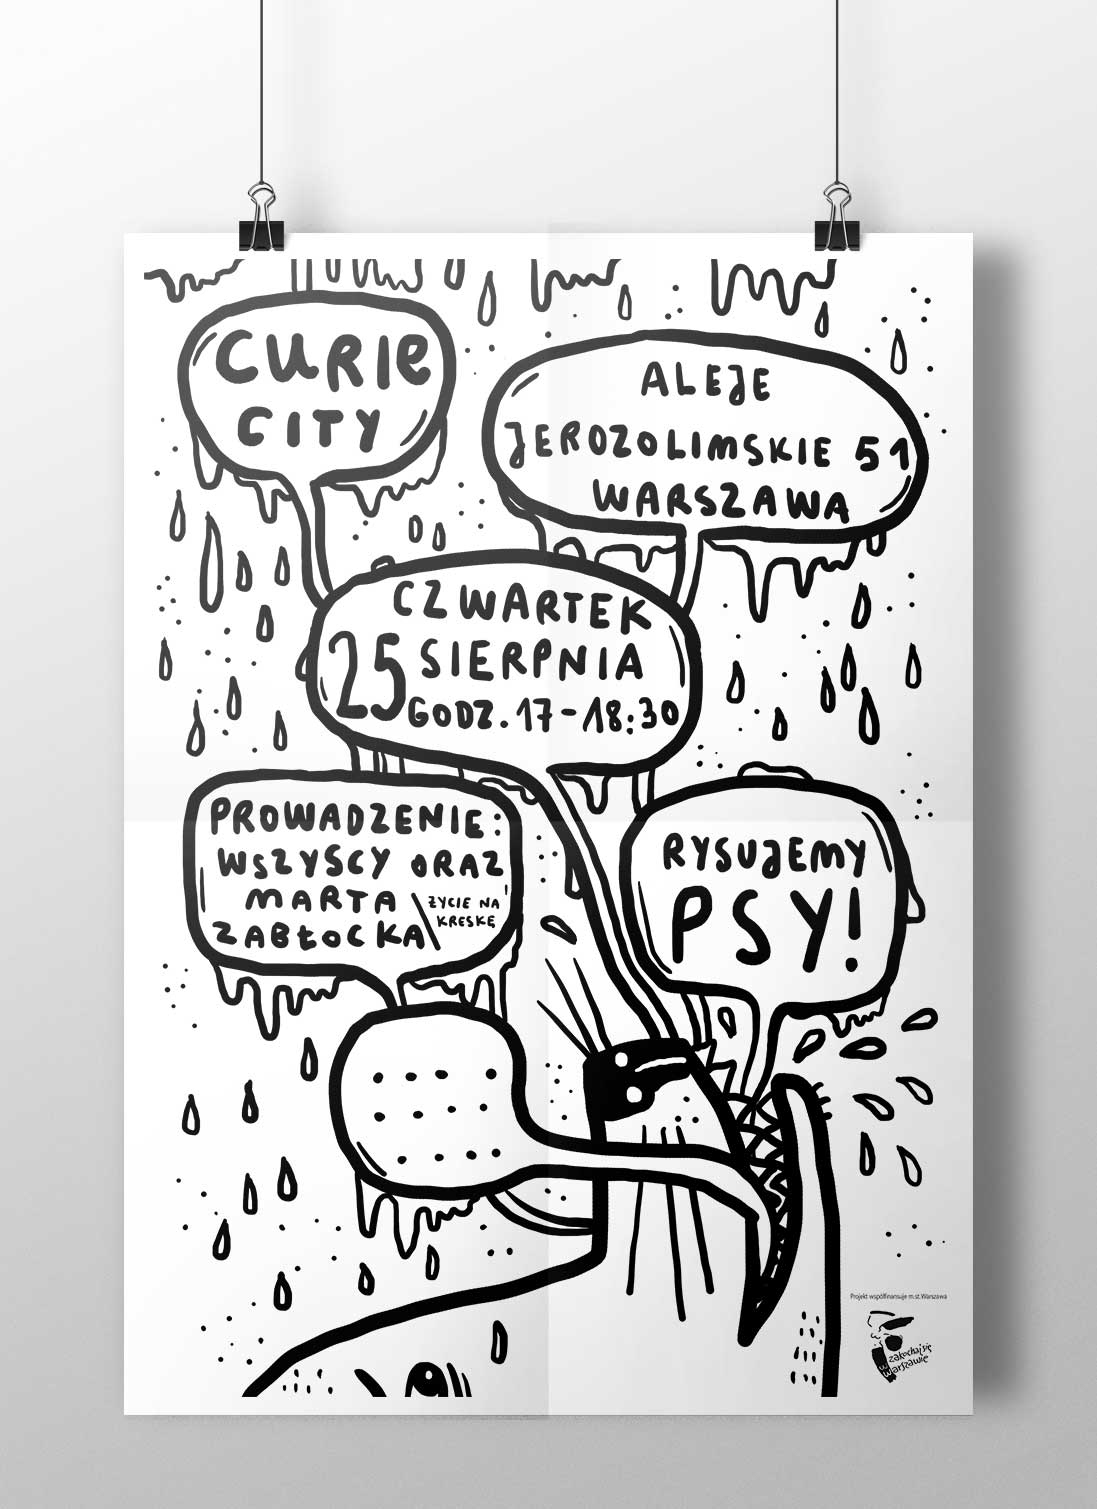 Curie City - Psy